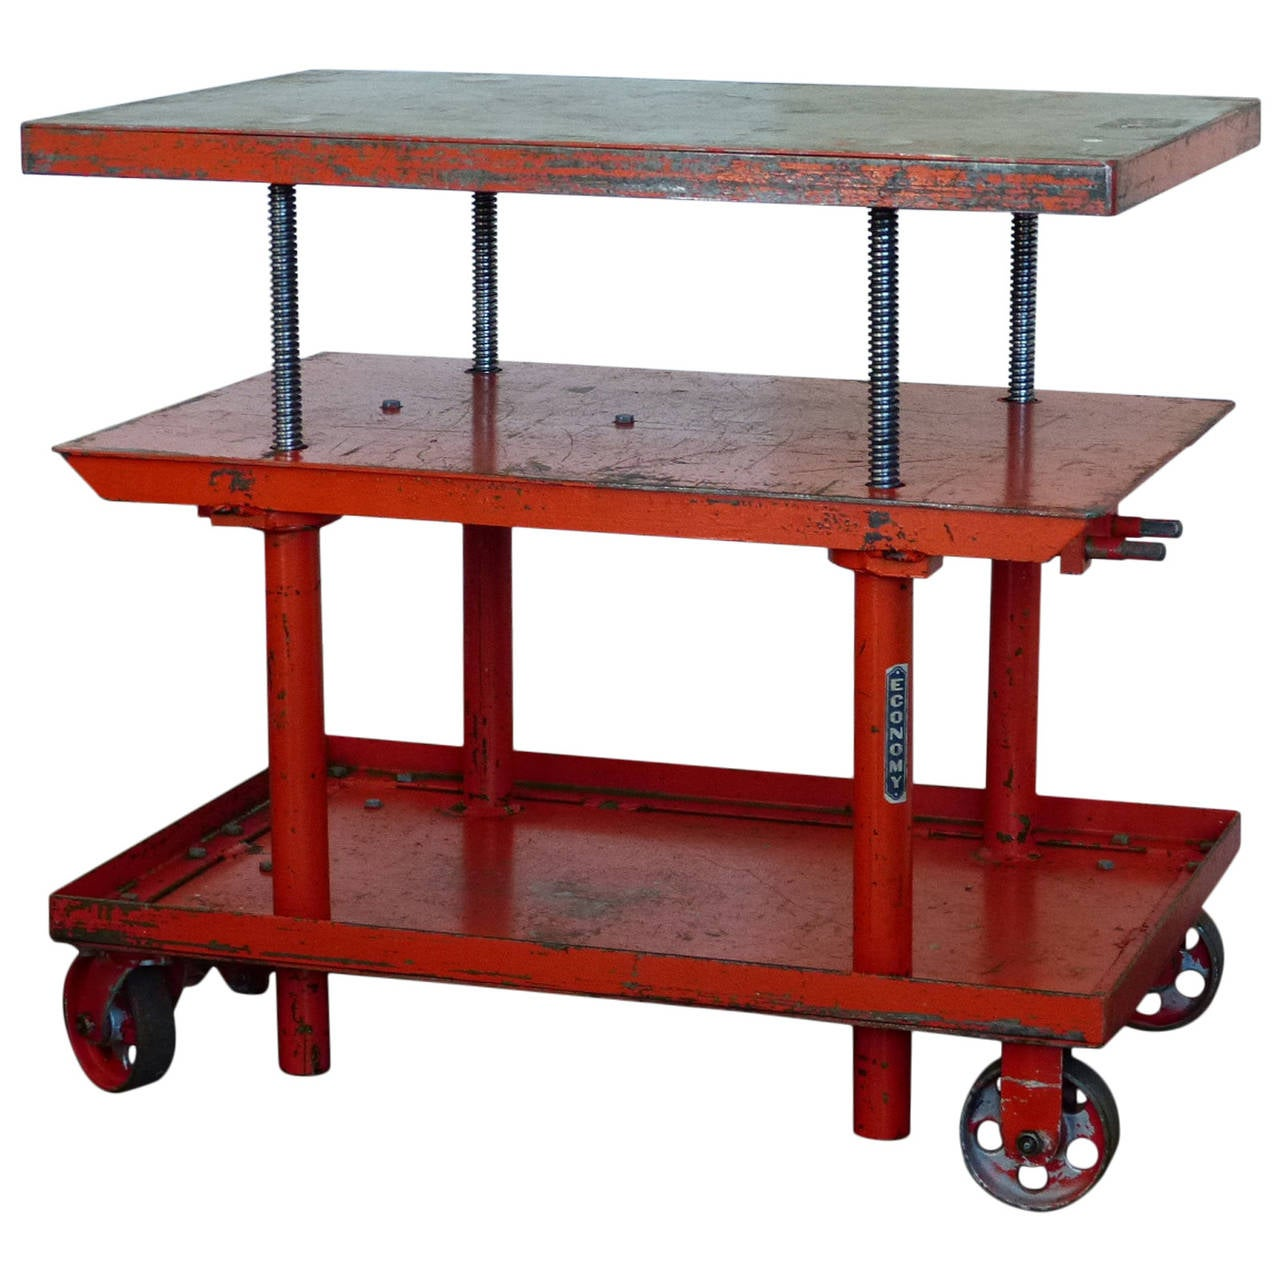 1950 Industrial Adjustable Height Lift Table At 1stdibs